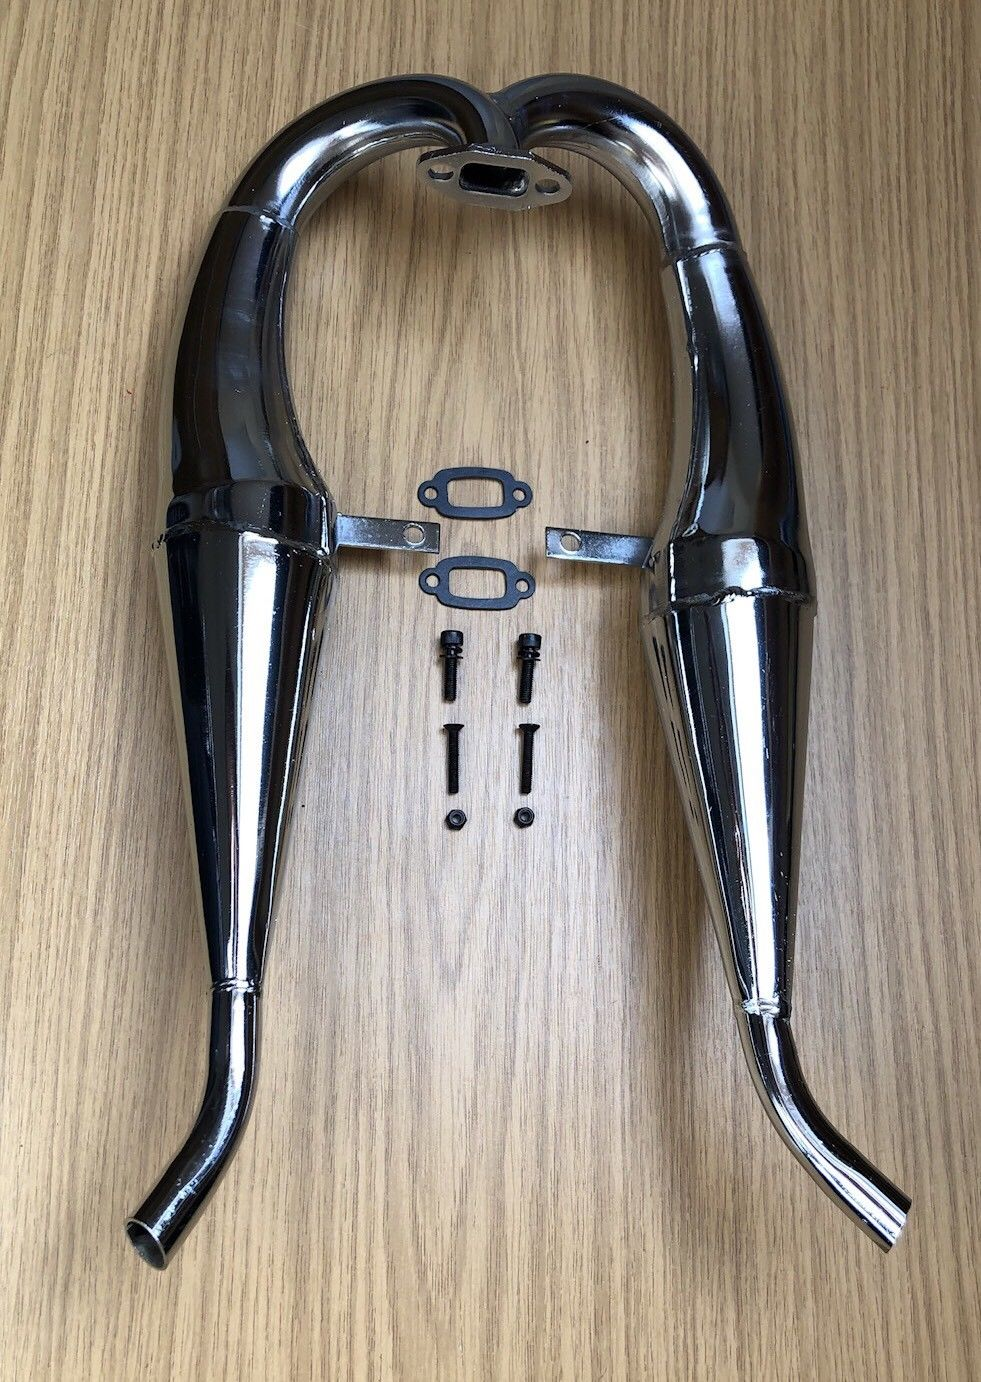 HPI BAJA ALLOY TWIN EXHAUST TUNED PIPE FOR HPI BAJA 5B 2 0 3 0 SS